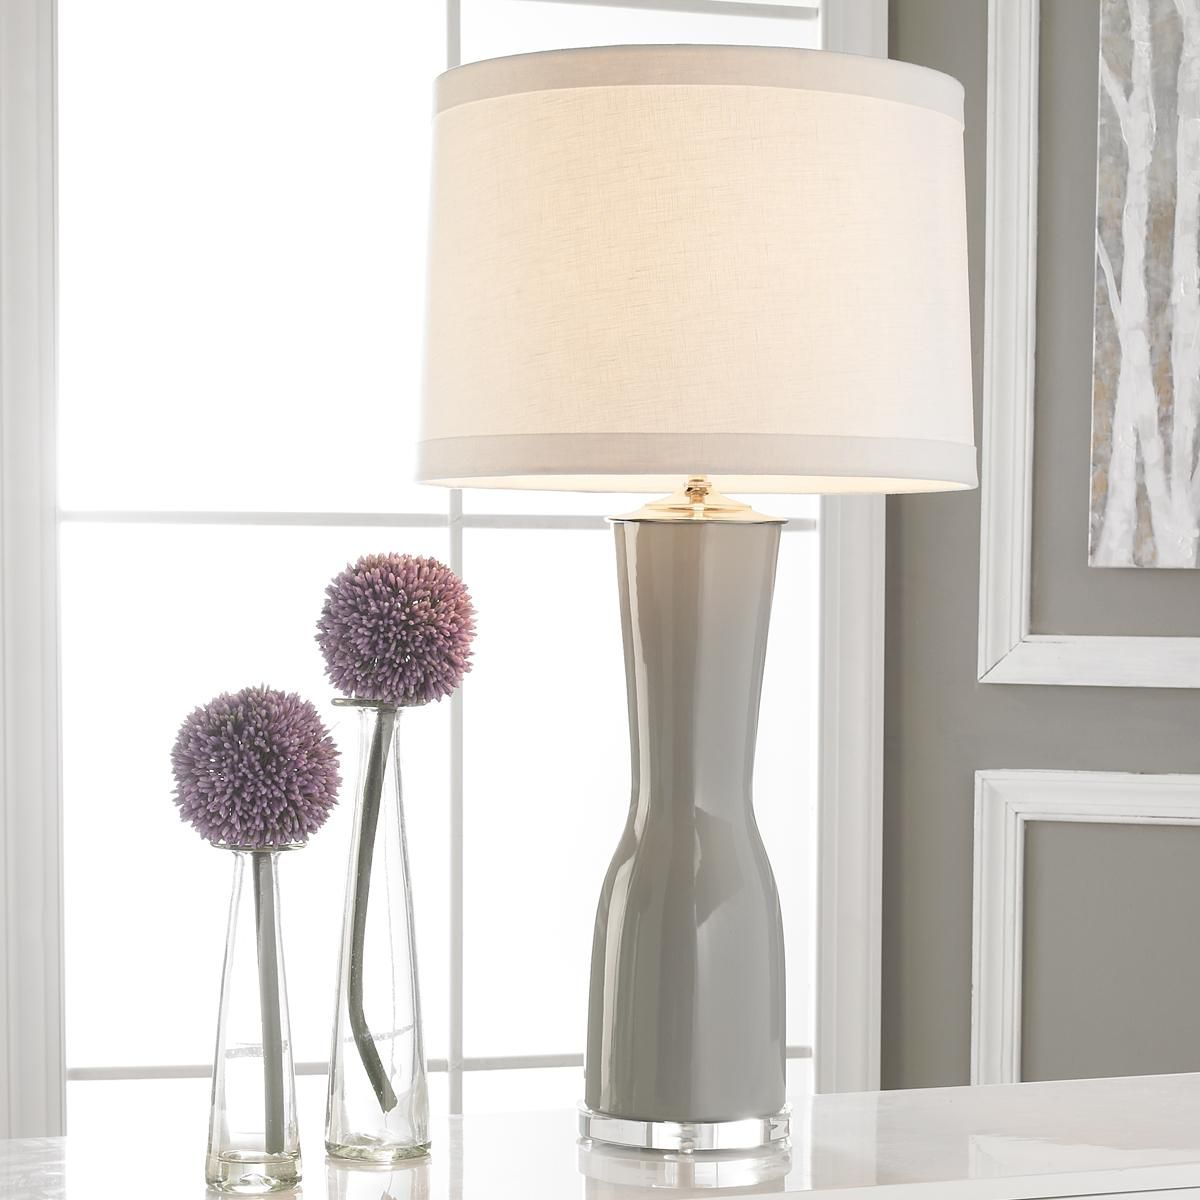 Gray Table Lamps Unique Gray Matters Ceramic Table Lamp A Sophisticated Hourglass Shape Design Inspiration